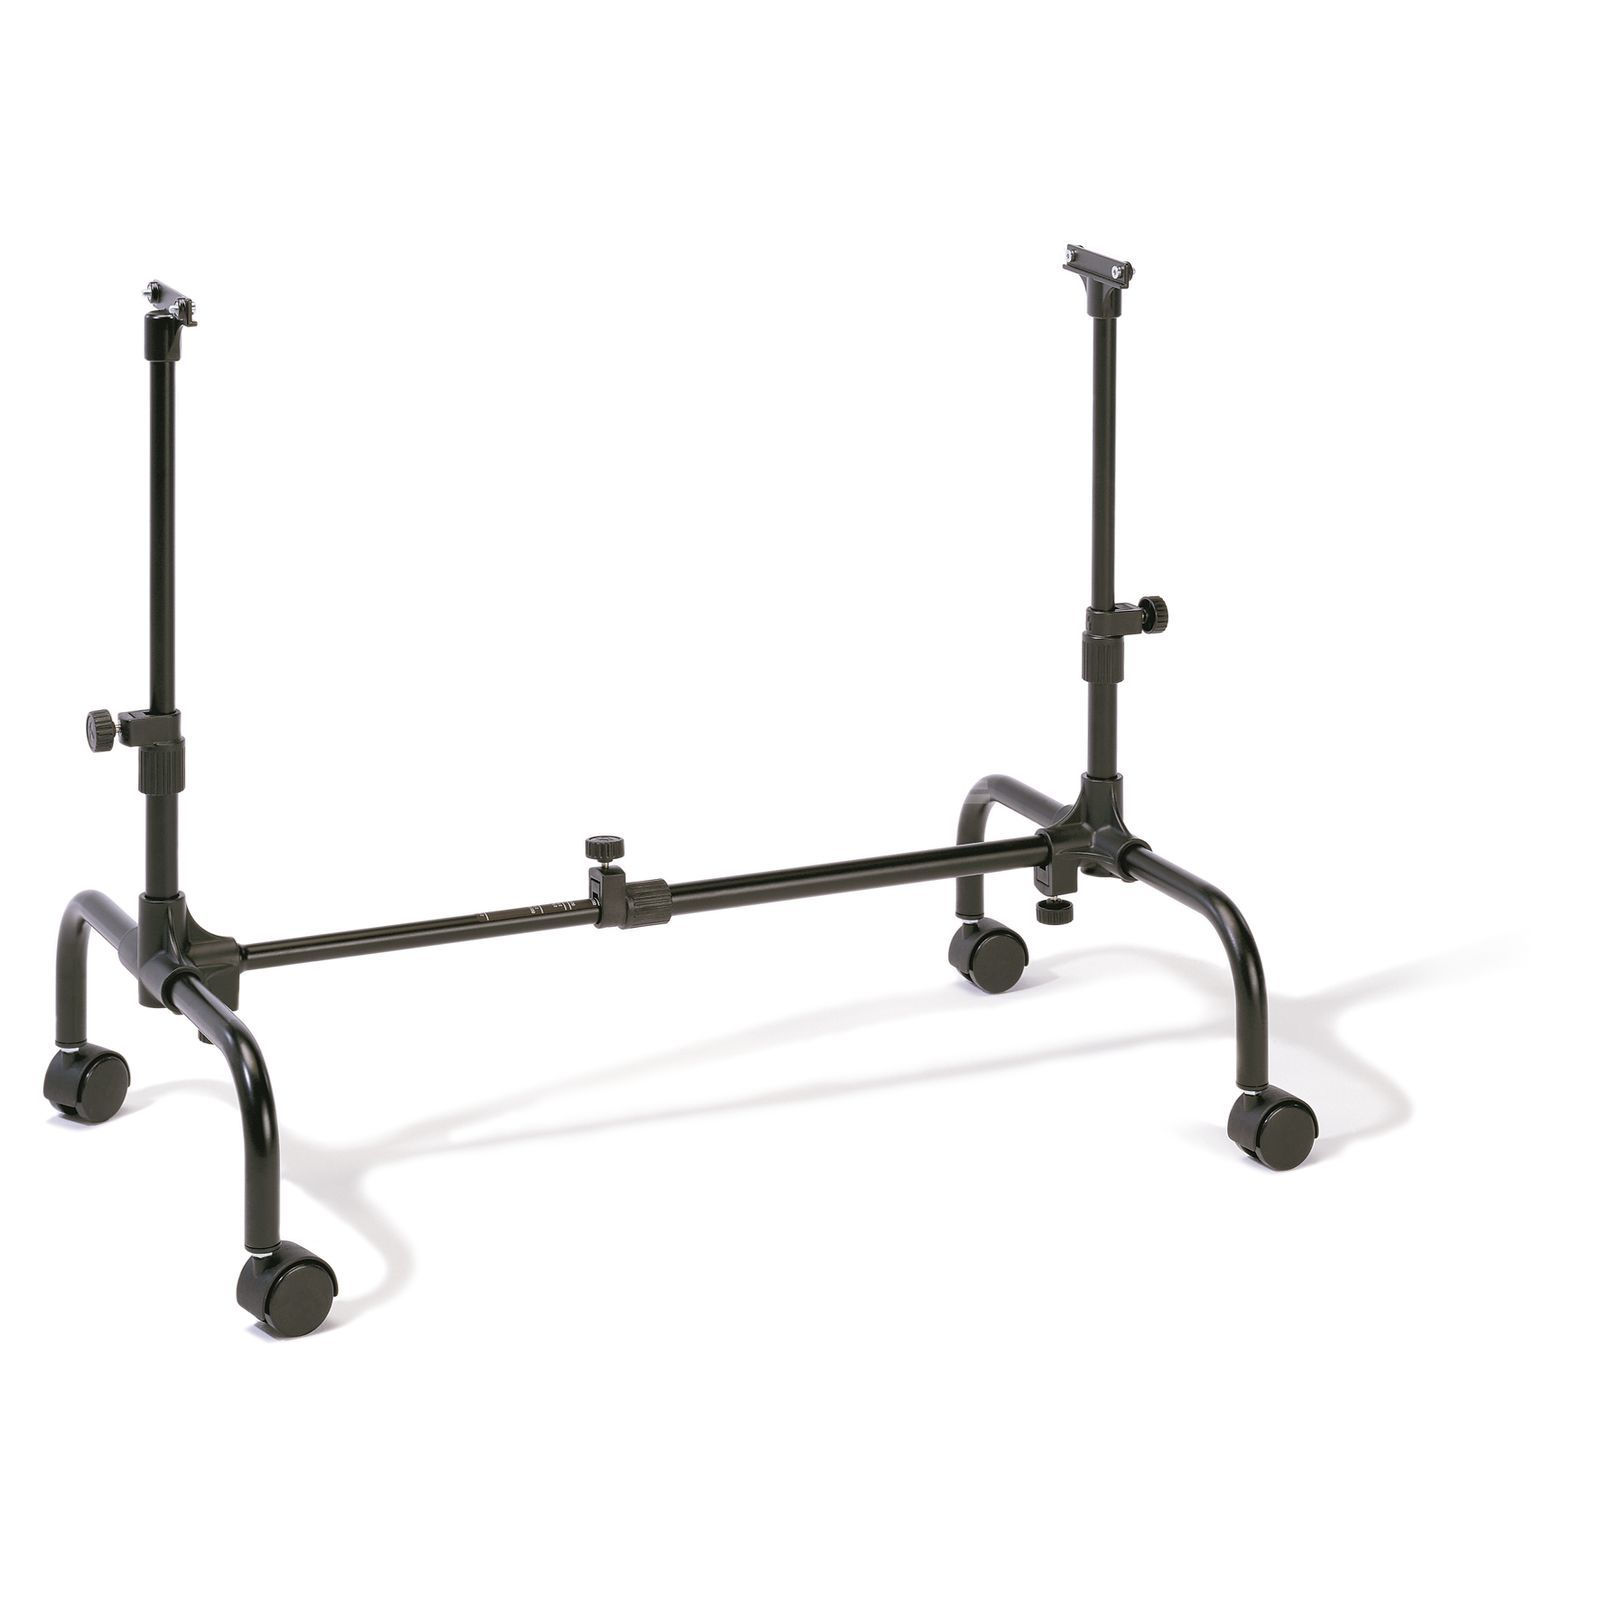 Sonor Basis Trolley BT, Wagen für TAKX 30 Produktbild